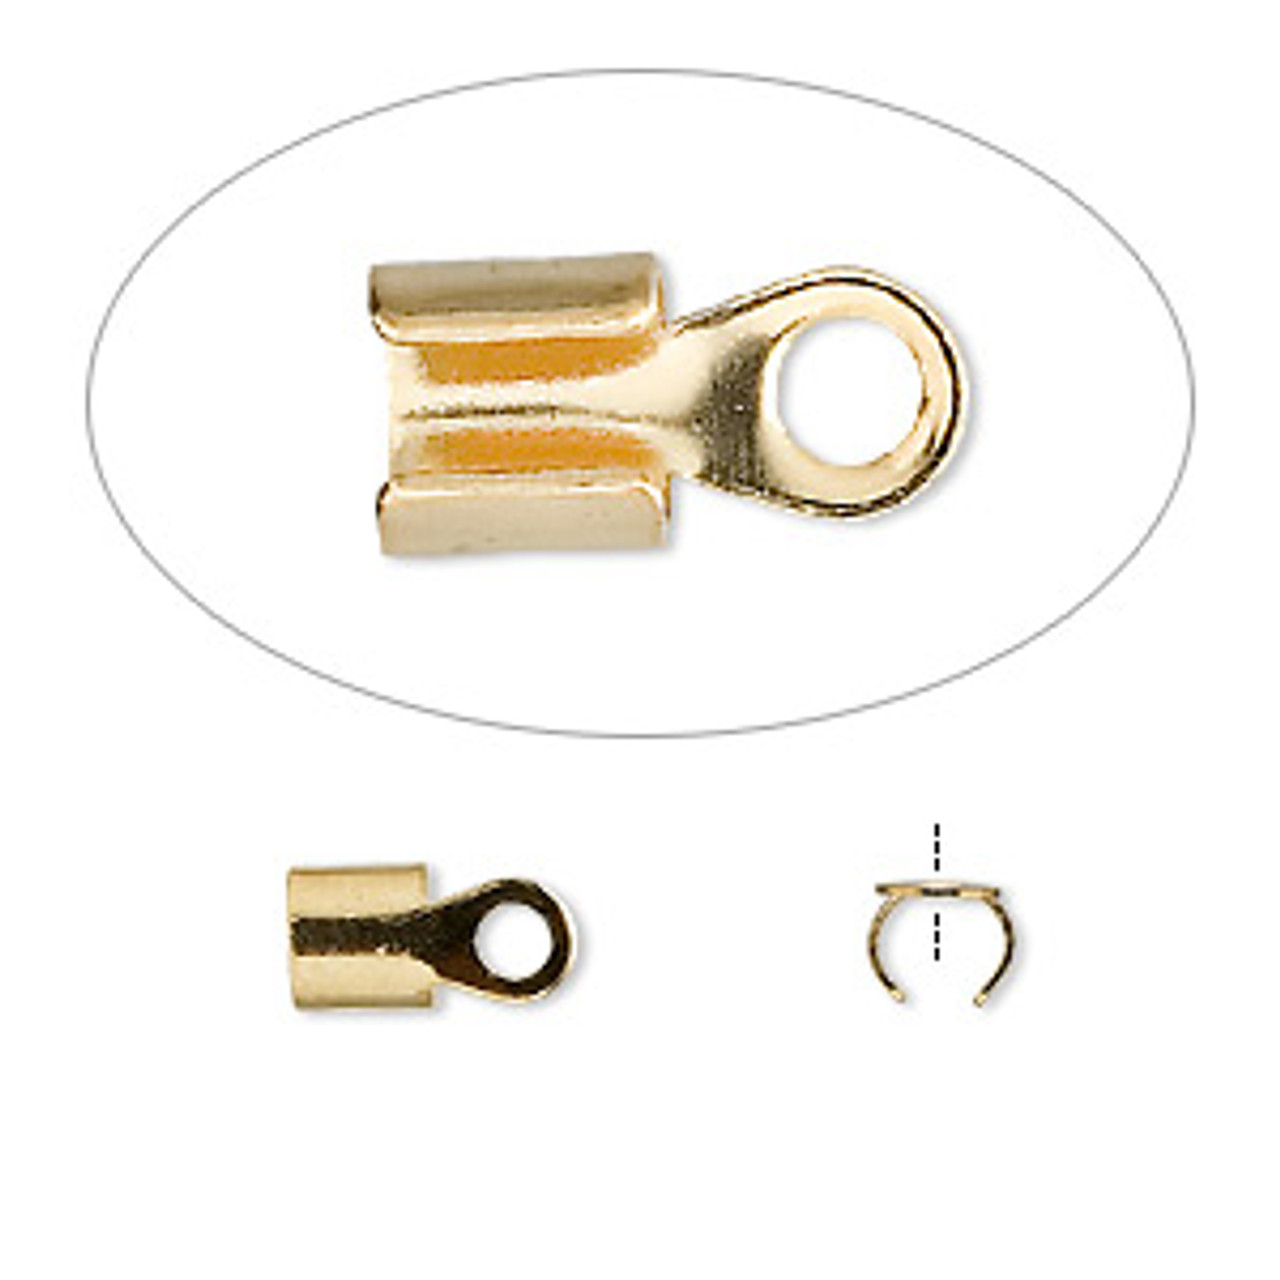 5x5mm with 4mm ID Gold Plated Fold Over Crimp End (12pk)